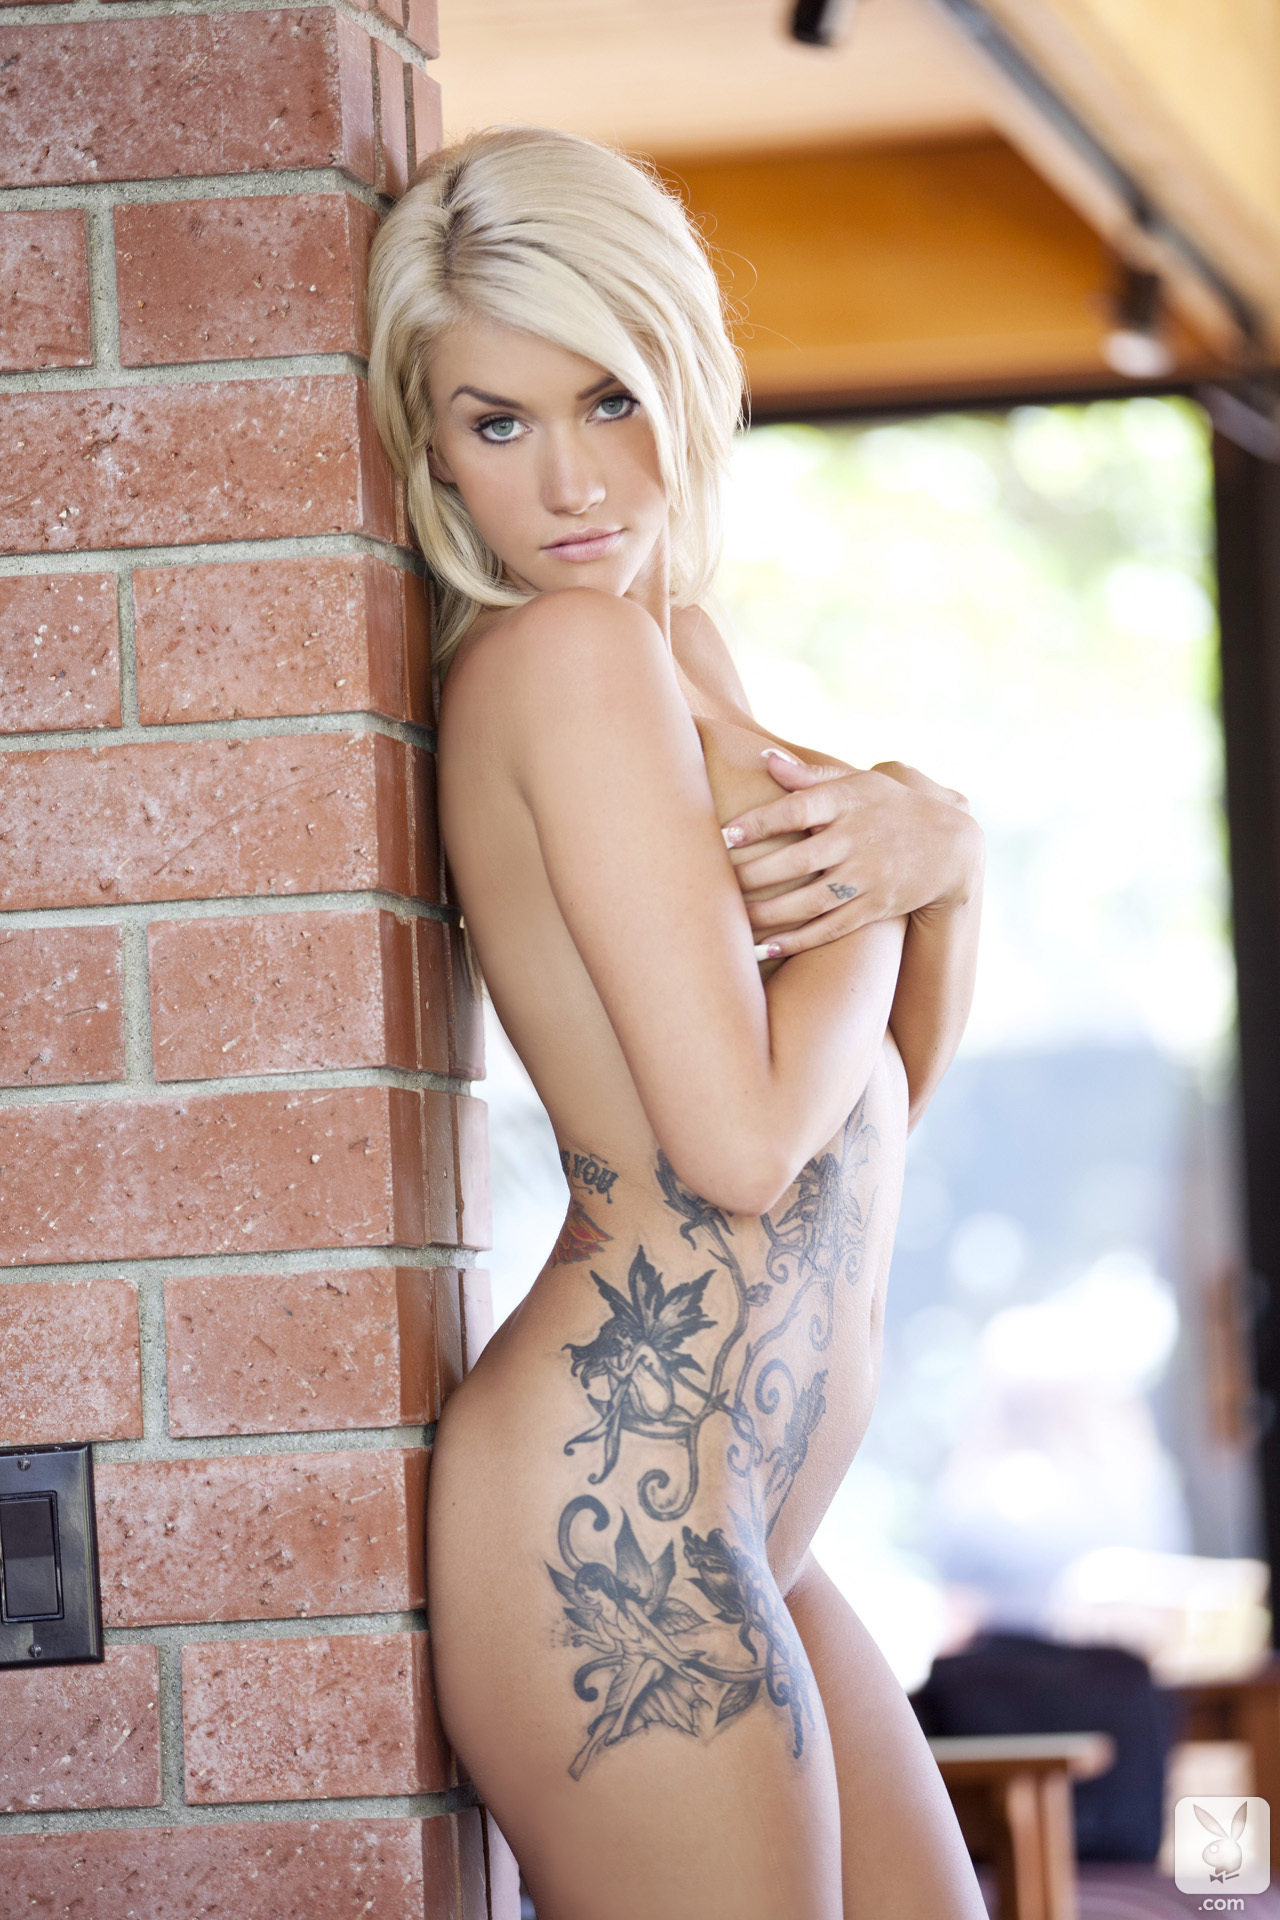 Taylor Seinturier Cybergirl Of The Month July 2012 Blonde Lust (30)